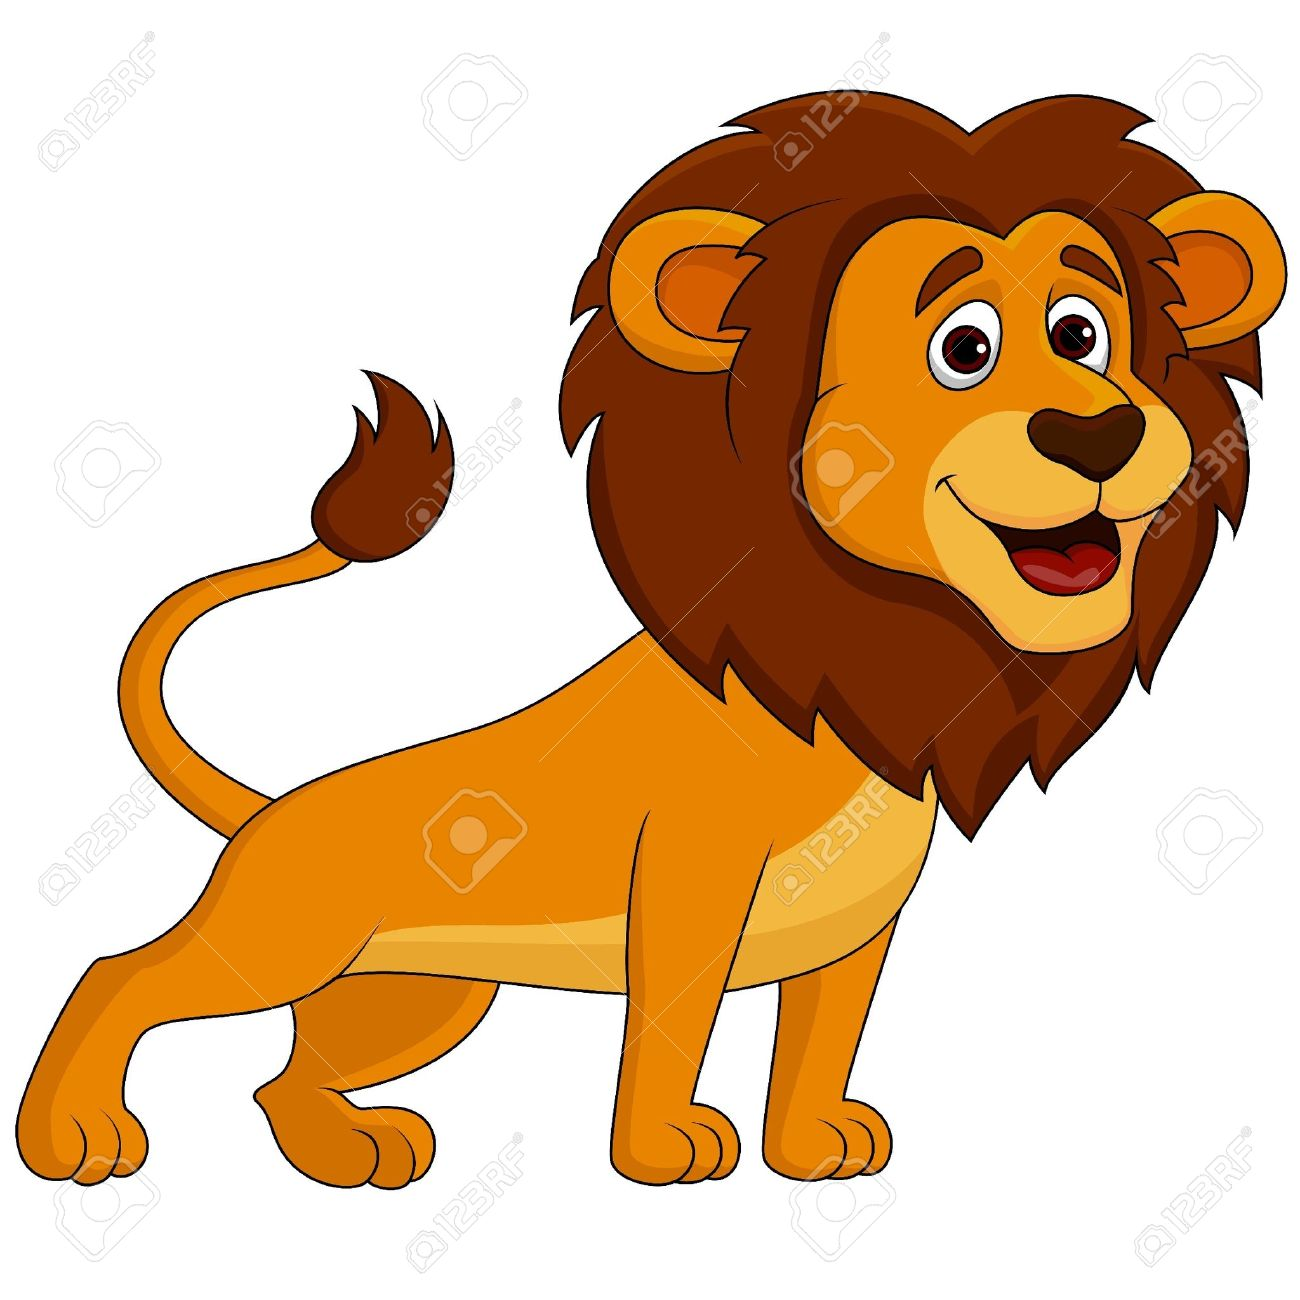 cute lion cartoon royalty free cliparts vectors and stock rh 123rf com free lion mascot clipart free lion clipart black and white